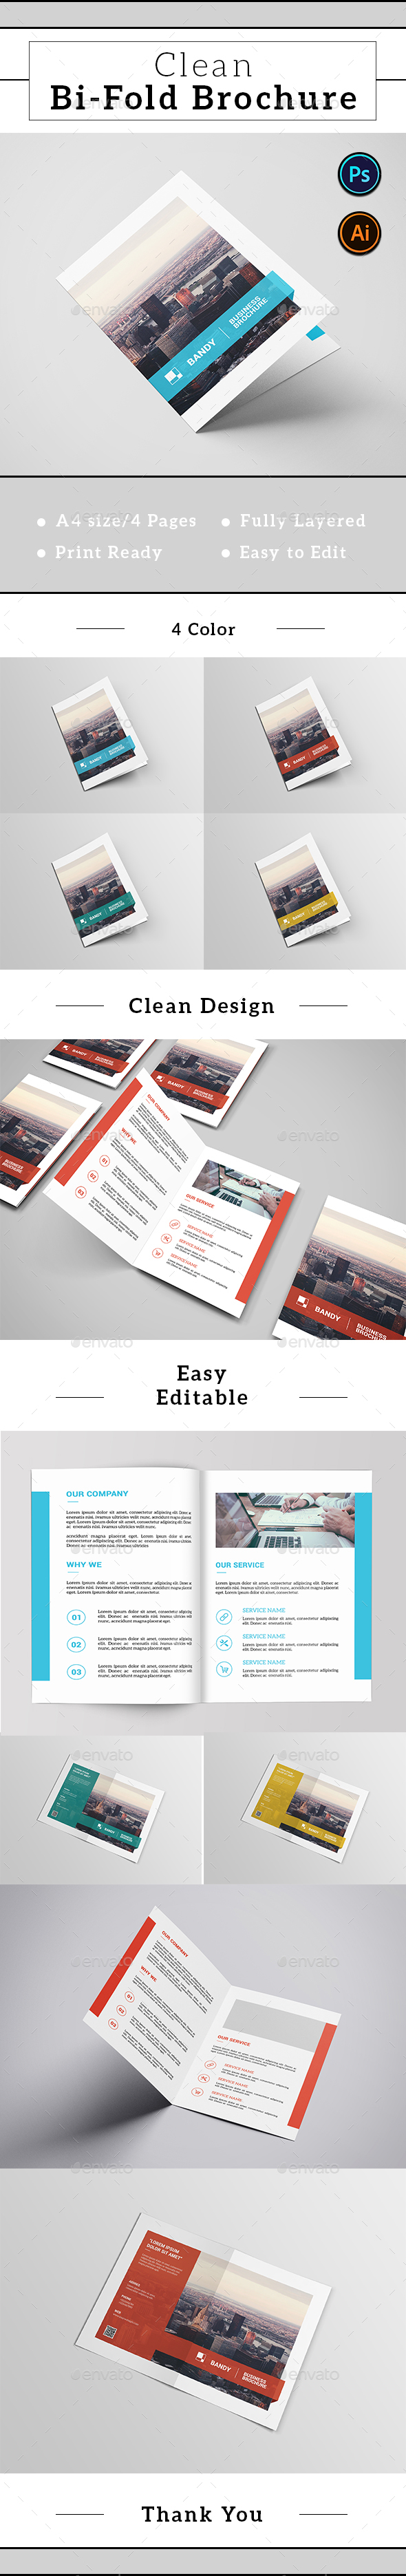 Corporate Bifold Brochure-v419 - Corporate Brochures